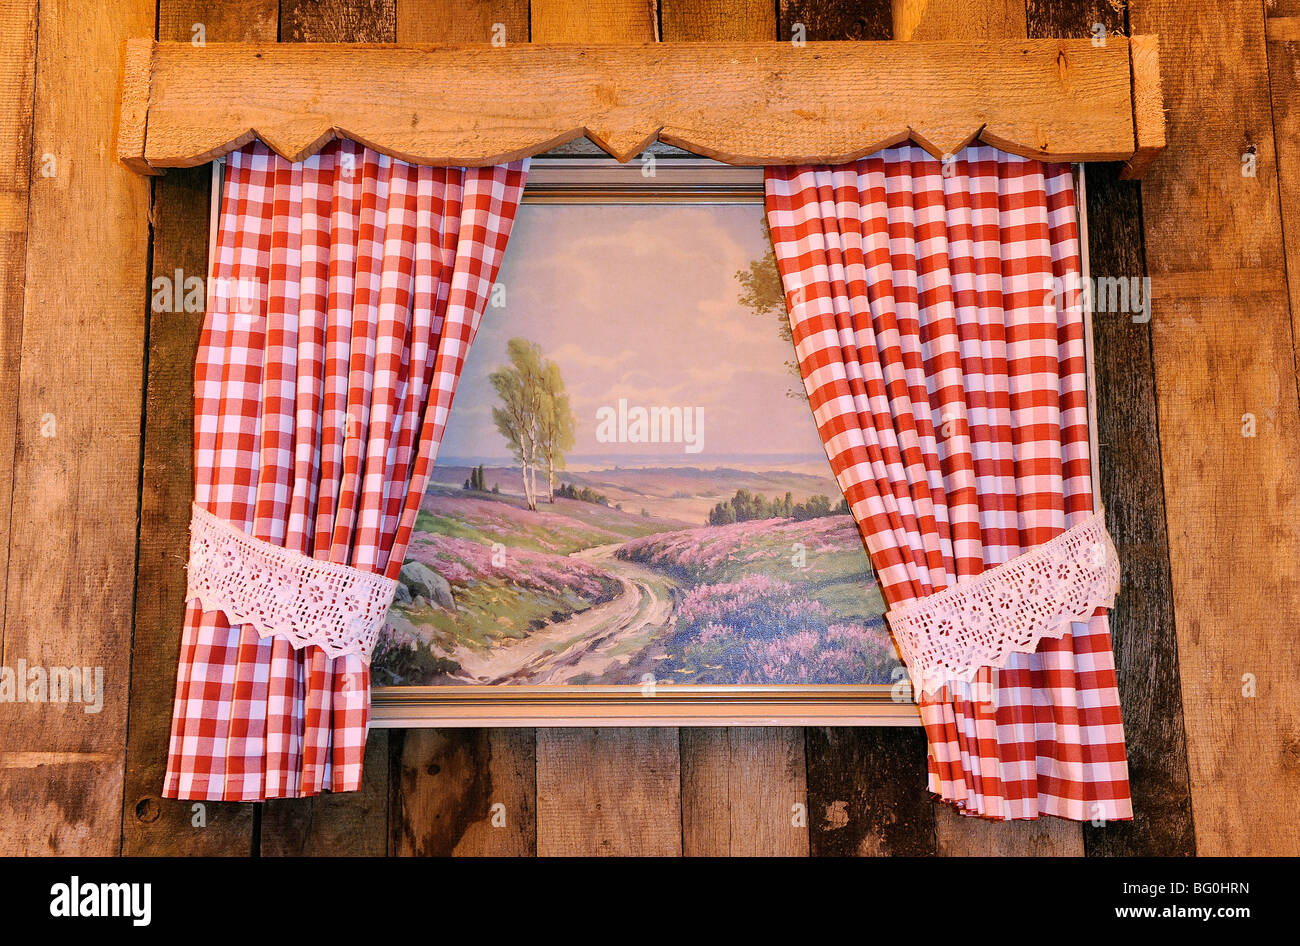 Red gingham curtains - Painting Behind Red Gingham Curtains